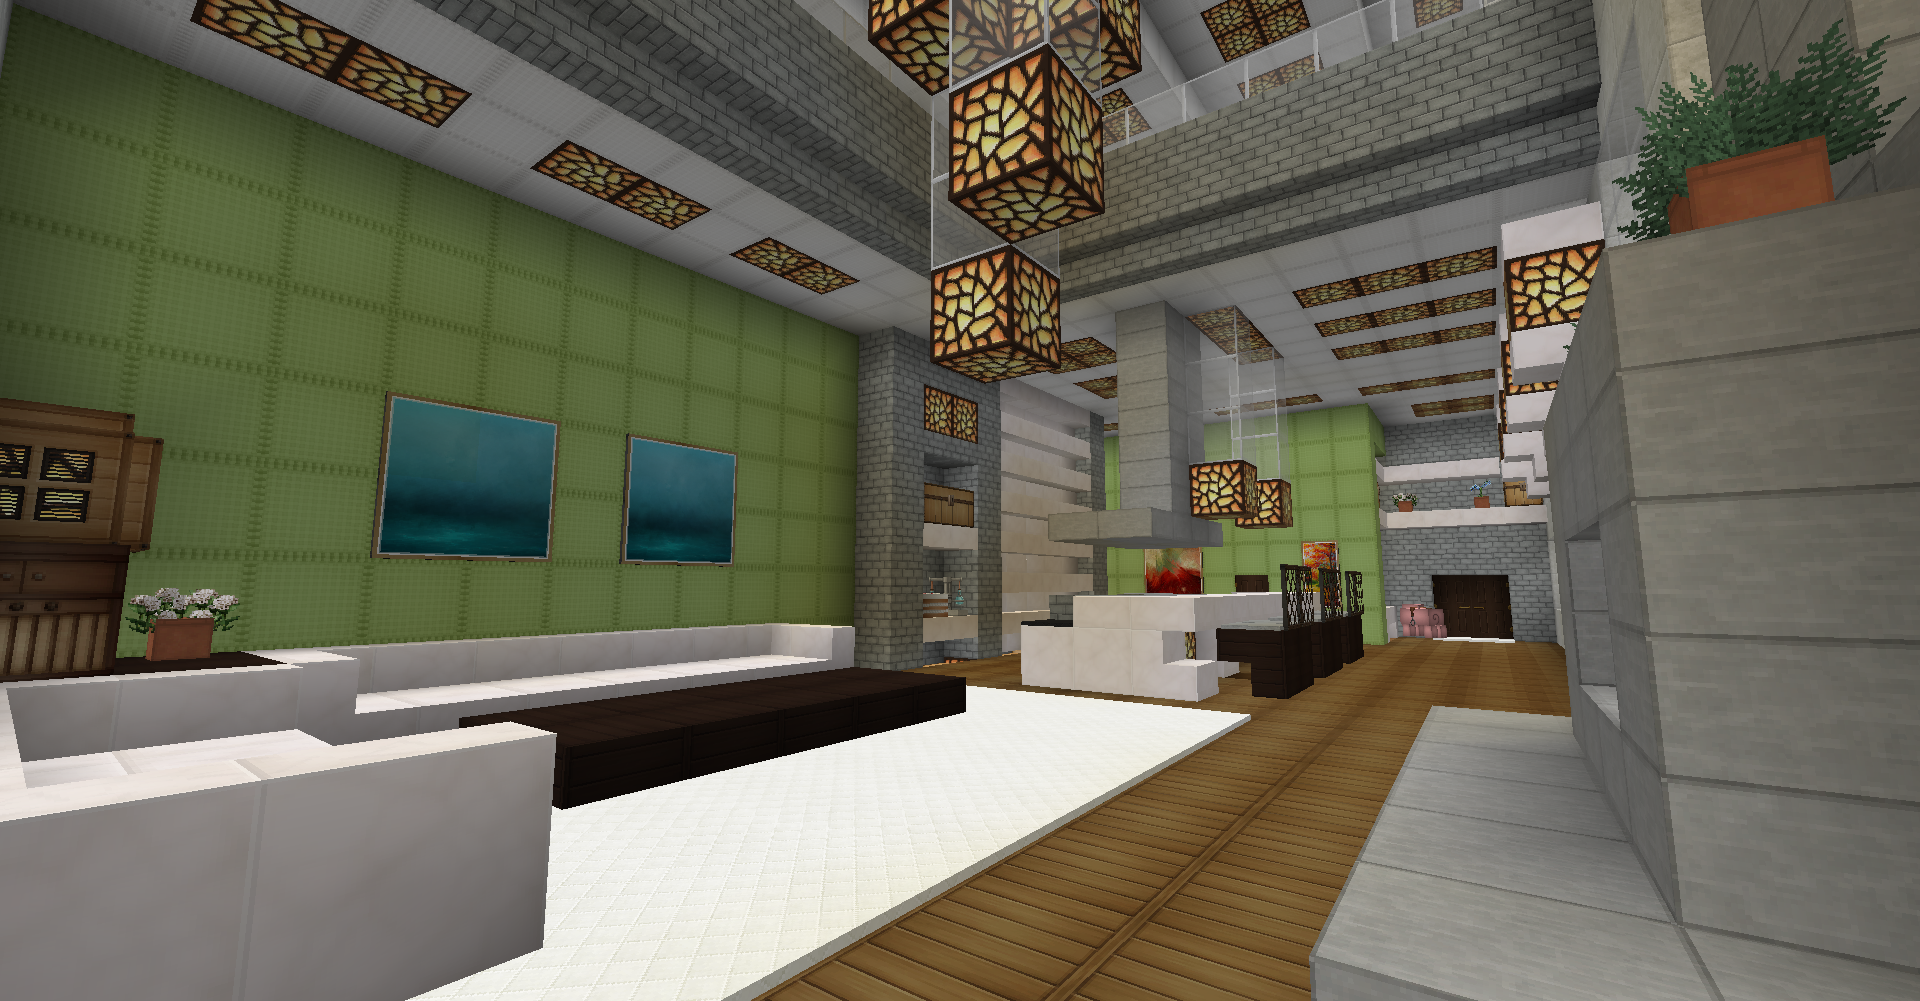 minecraft survival modern house interior living room kitchen rh pinterest co uk